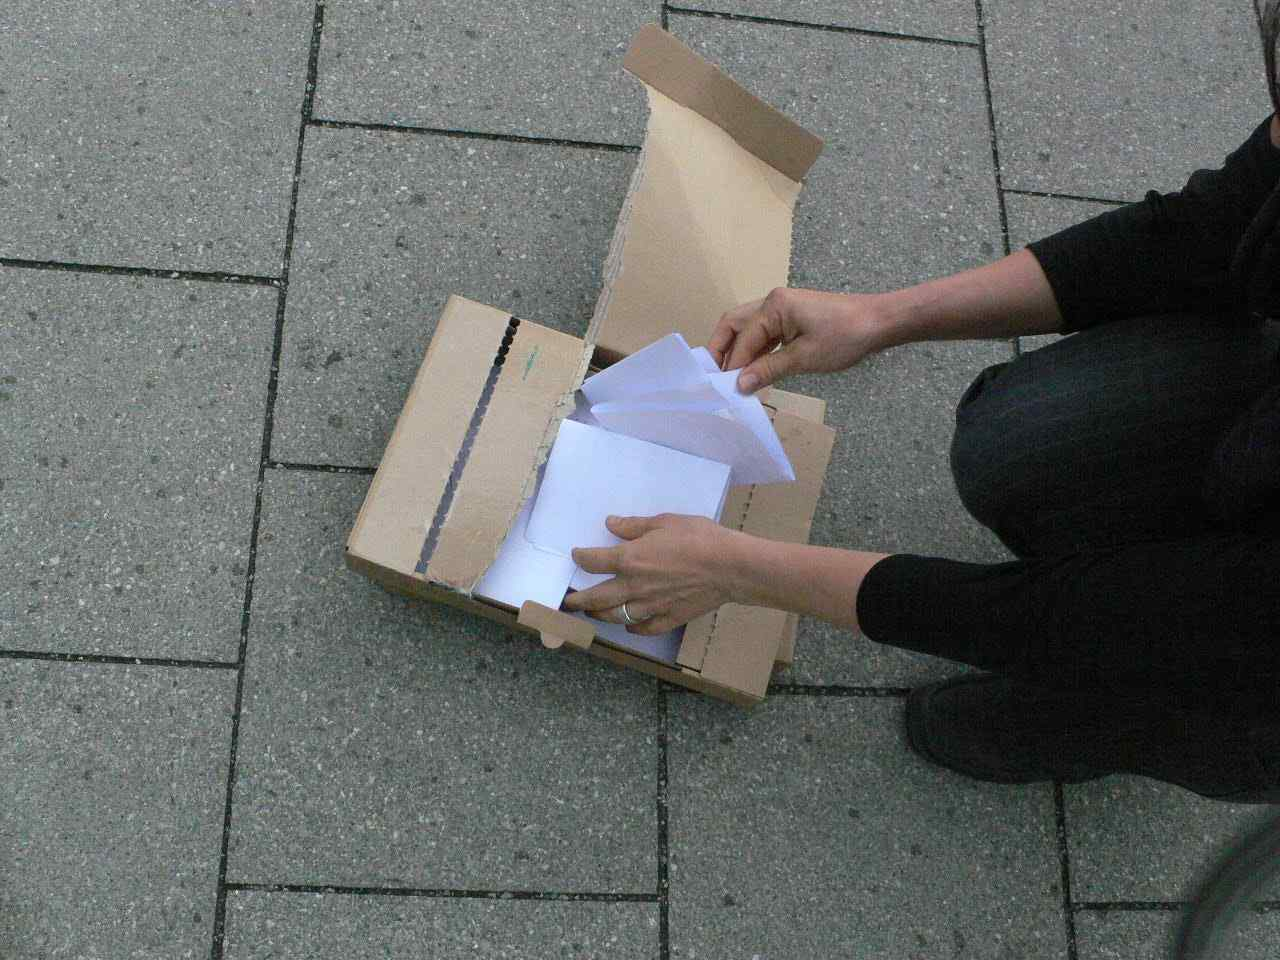 Das Los entscheidet / Drawing The Name Out Of The Box